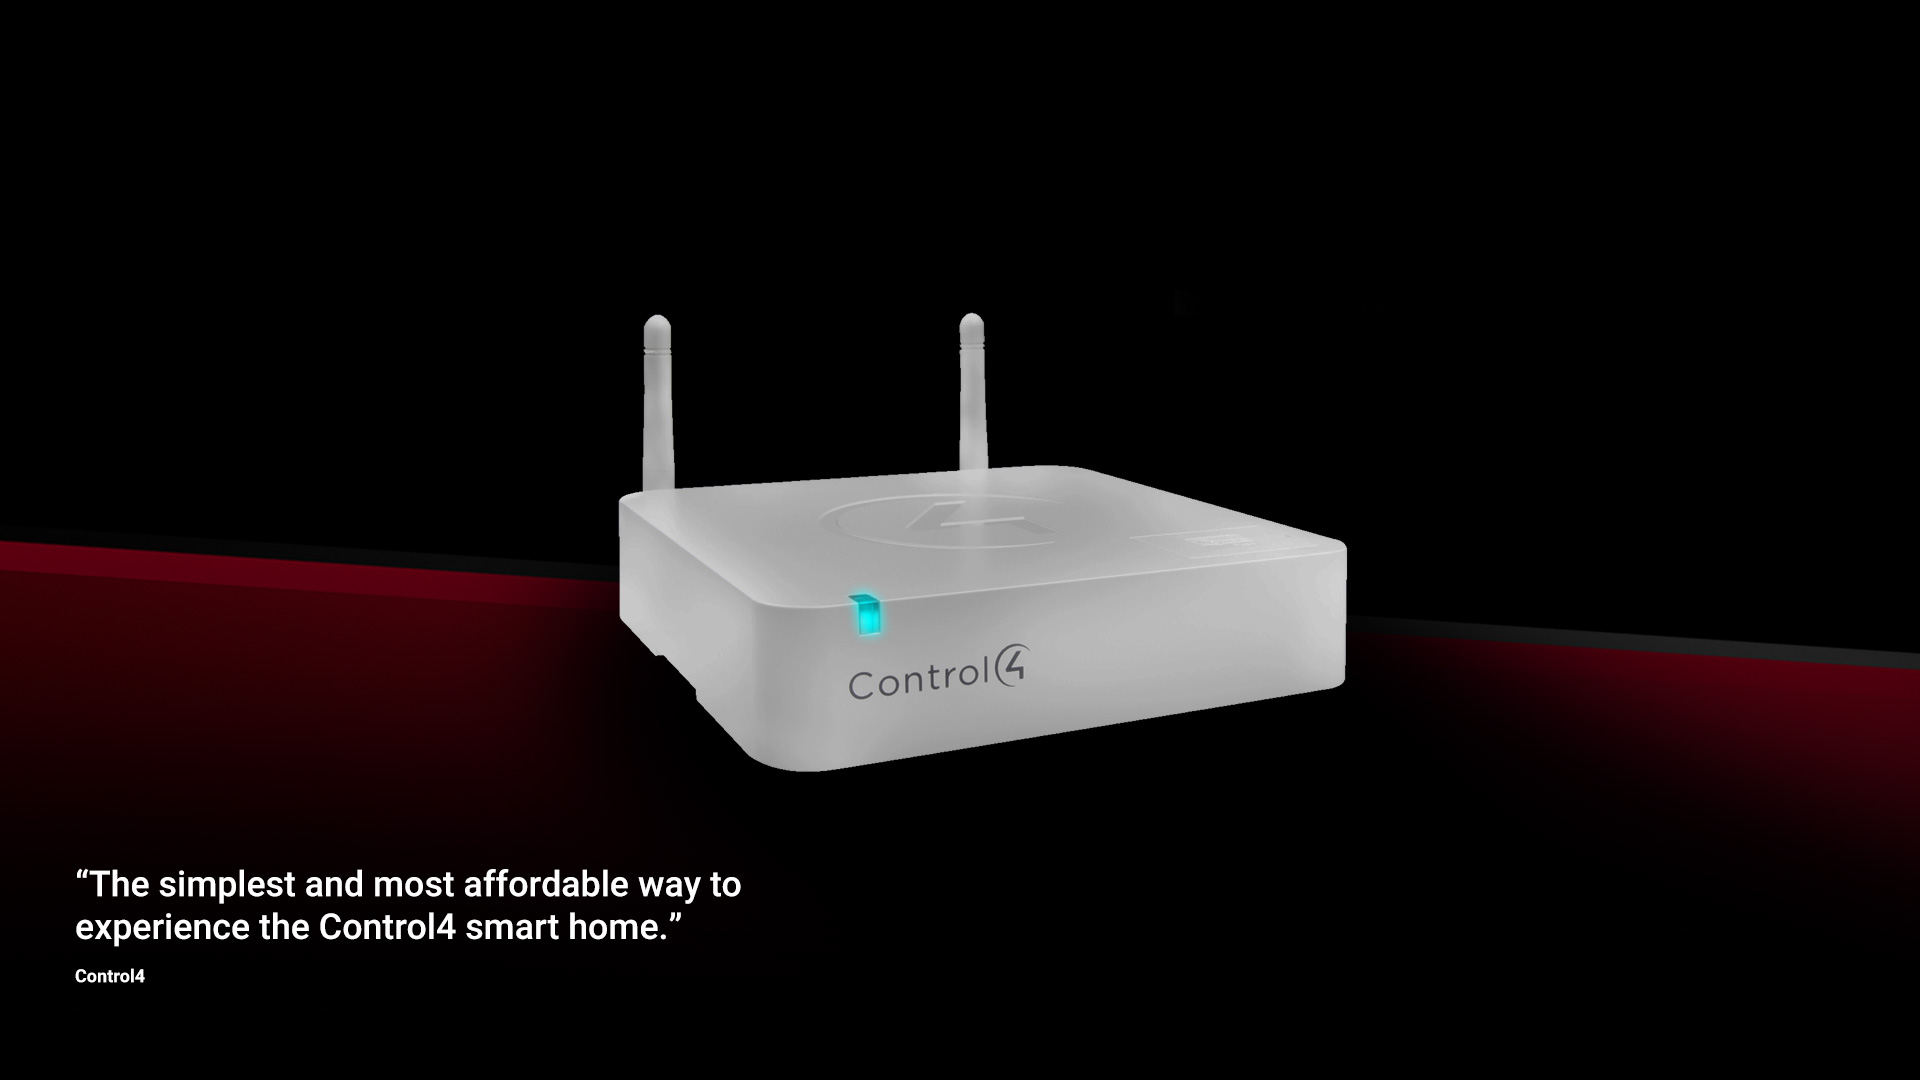 MHUB works perfectly with controllers like Control4 CA-1